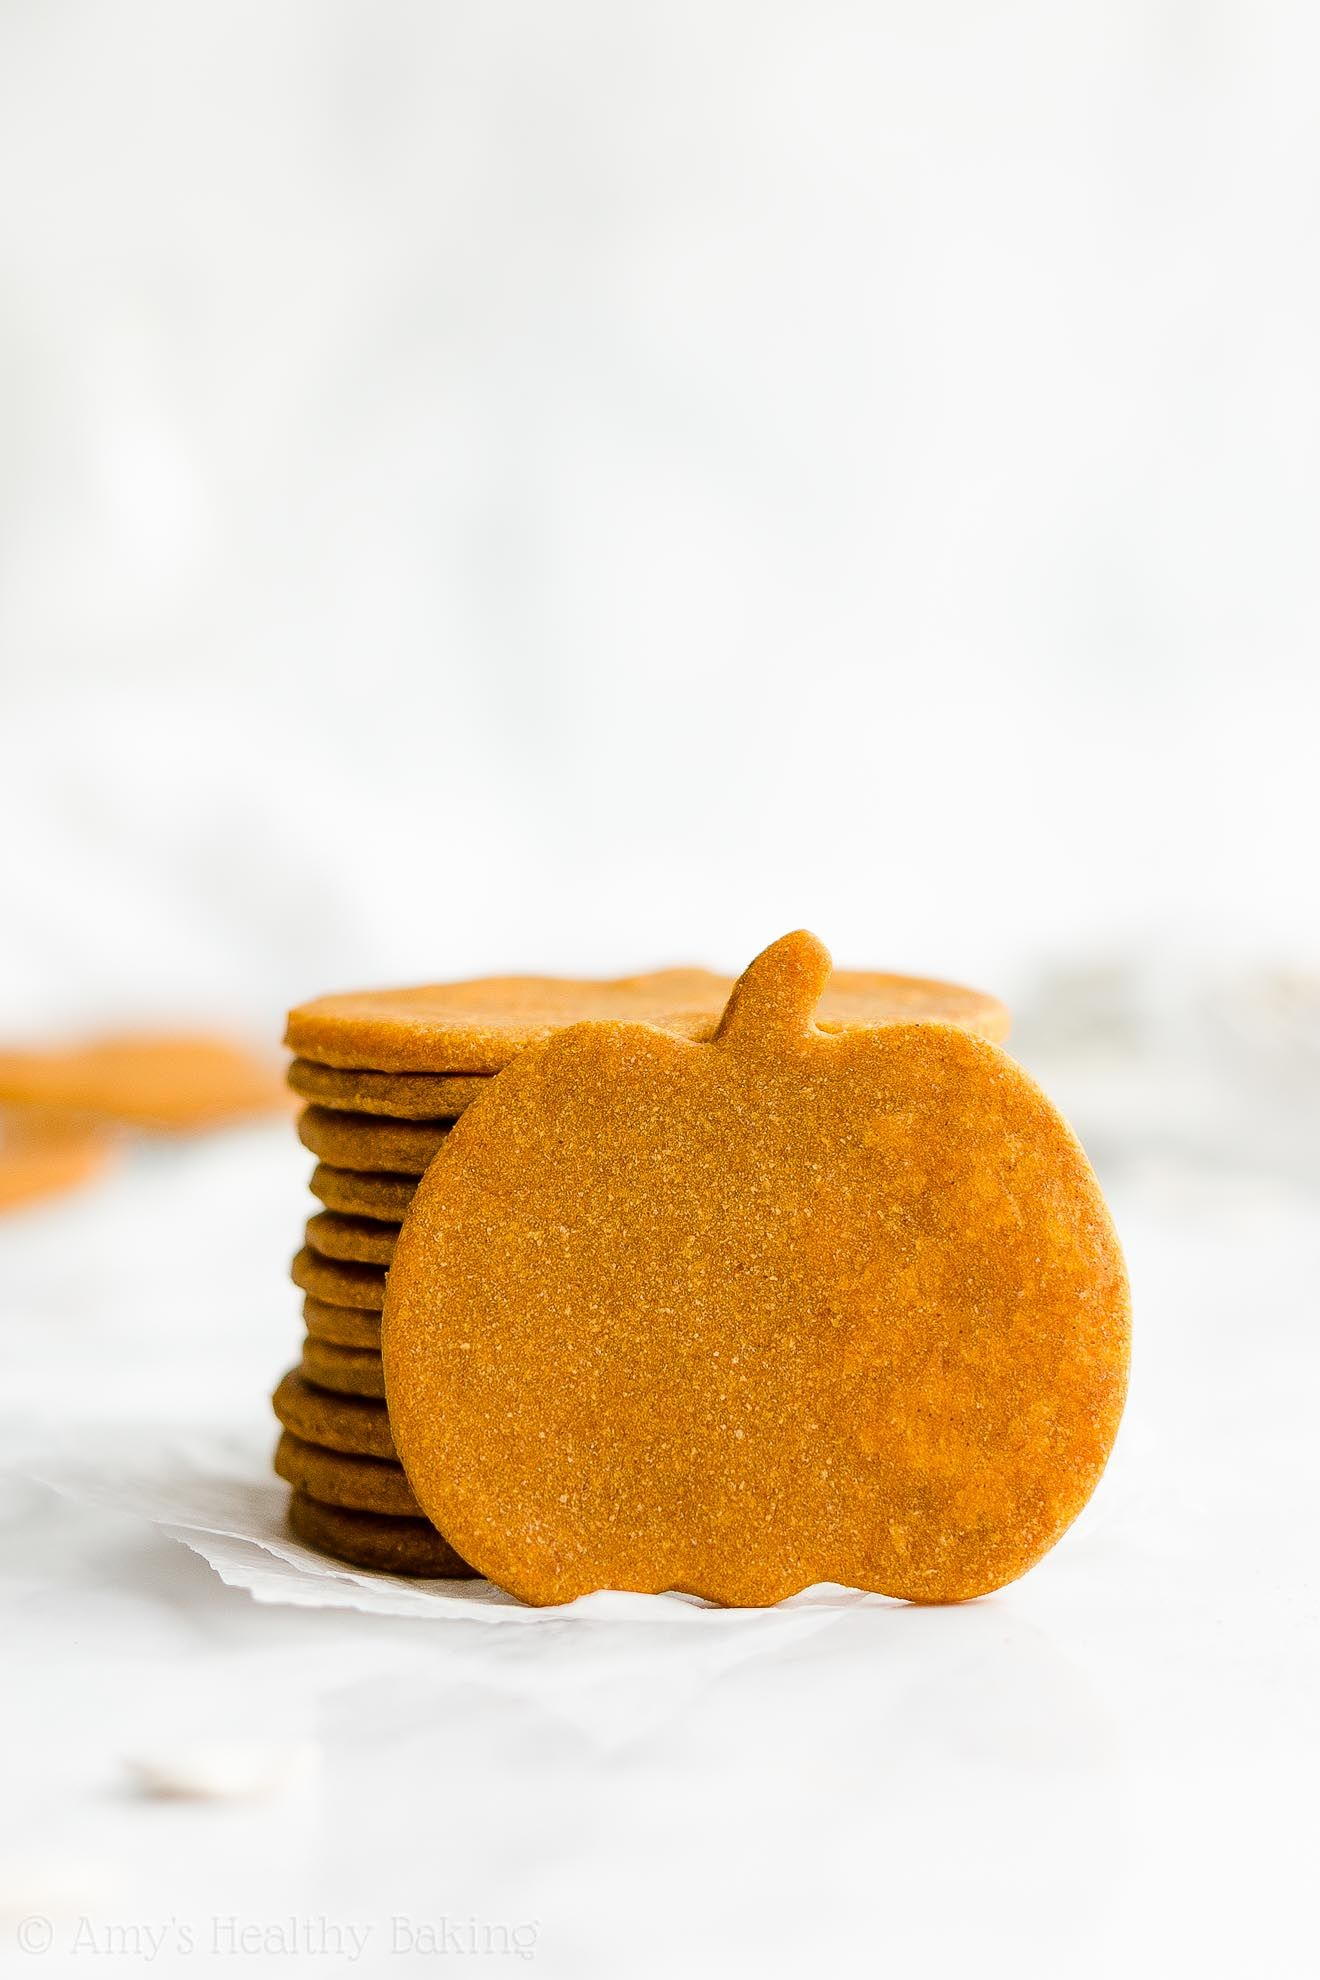 Healthy Pumpkin Sugar Cookies – only 60 calories & they taste like pumpkin pie! The BEST pumpkin sugar cookies I've ever had! ♡ easy clean eating vegan cutout pumpkin sugar cookies recipe. cute pumpkin sugar cookies for halloween or thanksgiving. simple low calorie pumpkin sugar cookies. #cinnamonsugarcookies